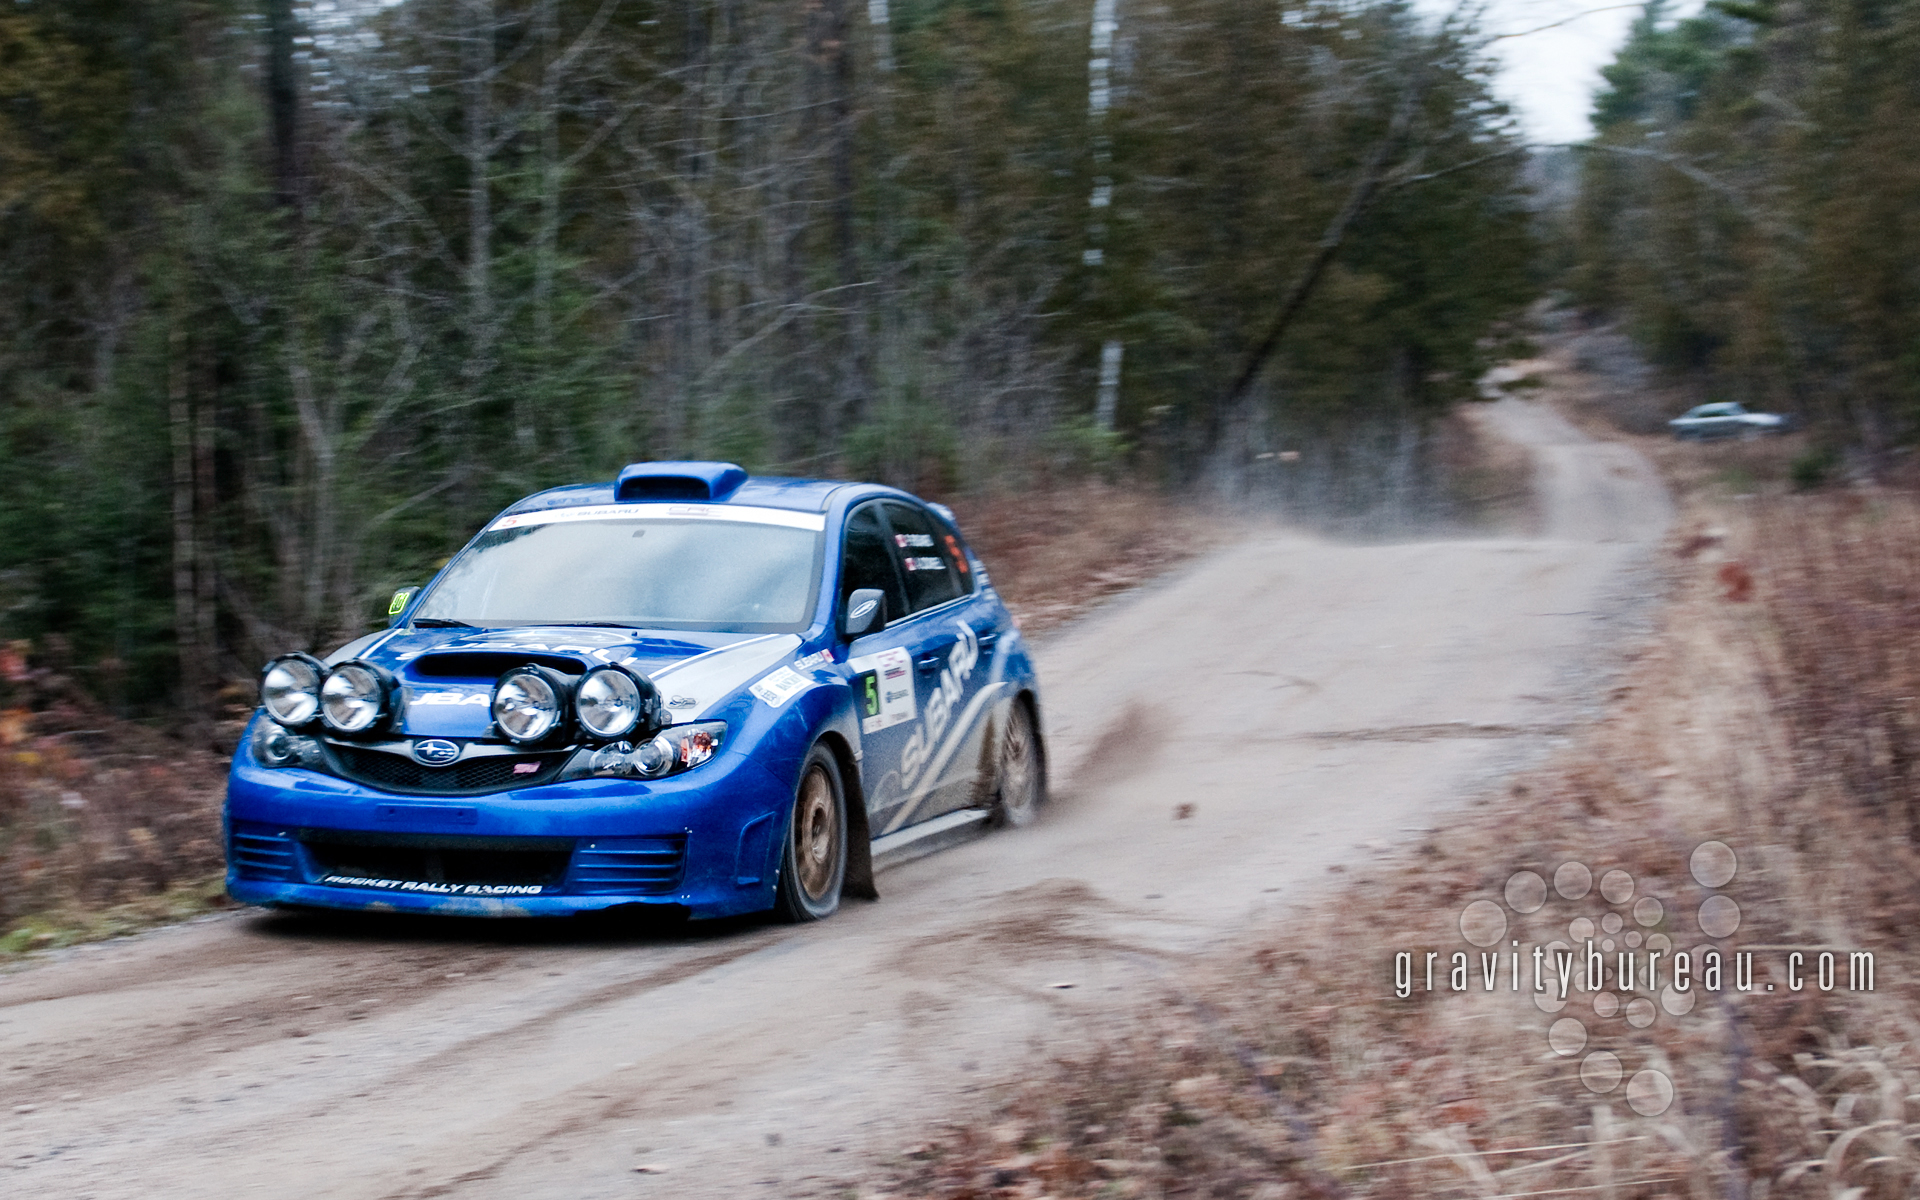 Your Favourite subaru rally car pictures!